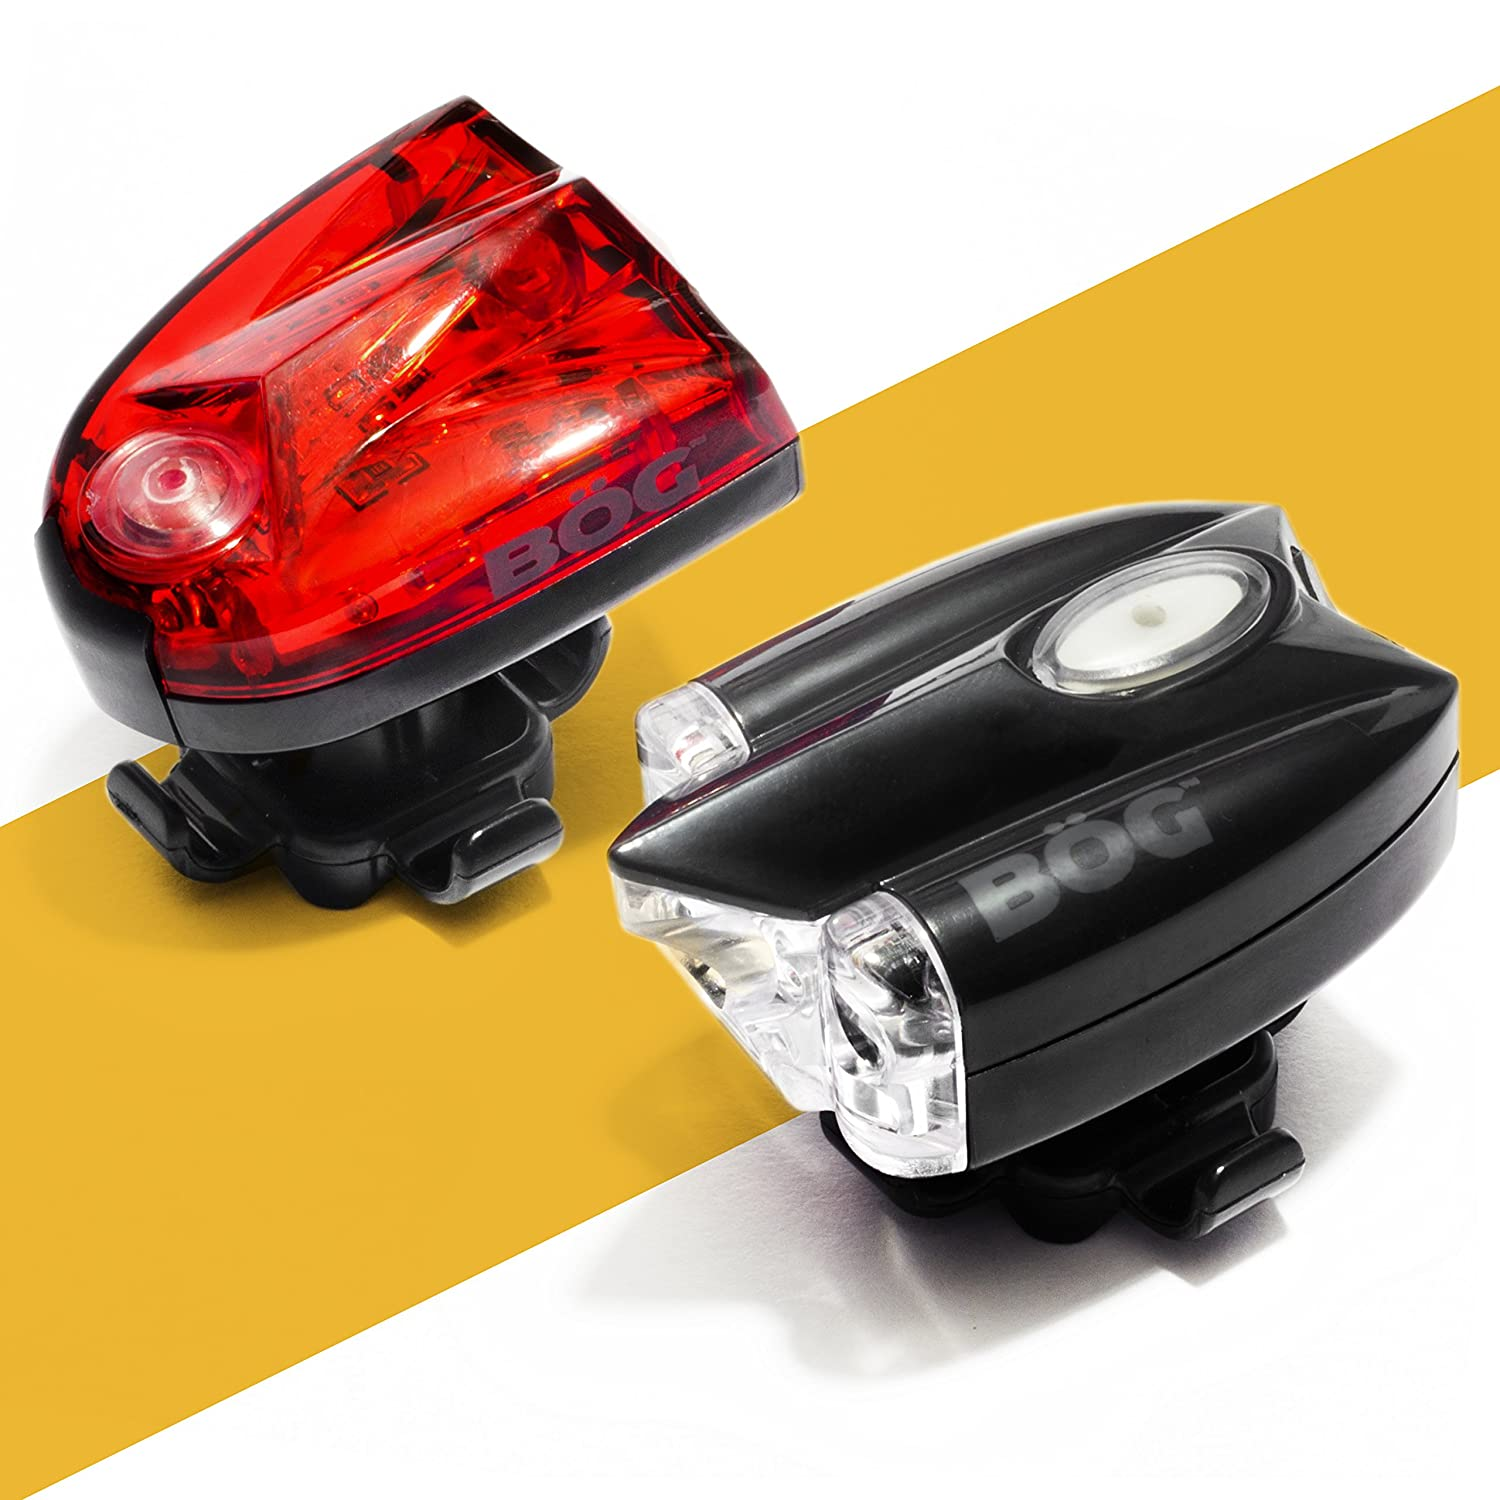 BoG Products USB Rechargeable LED Bike Light Set Headlight /& taillight Combo for Bicycle or Scooter Free high Visibility reflectors Safety kit FBA/_BoG-USB-Light-Set